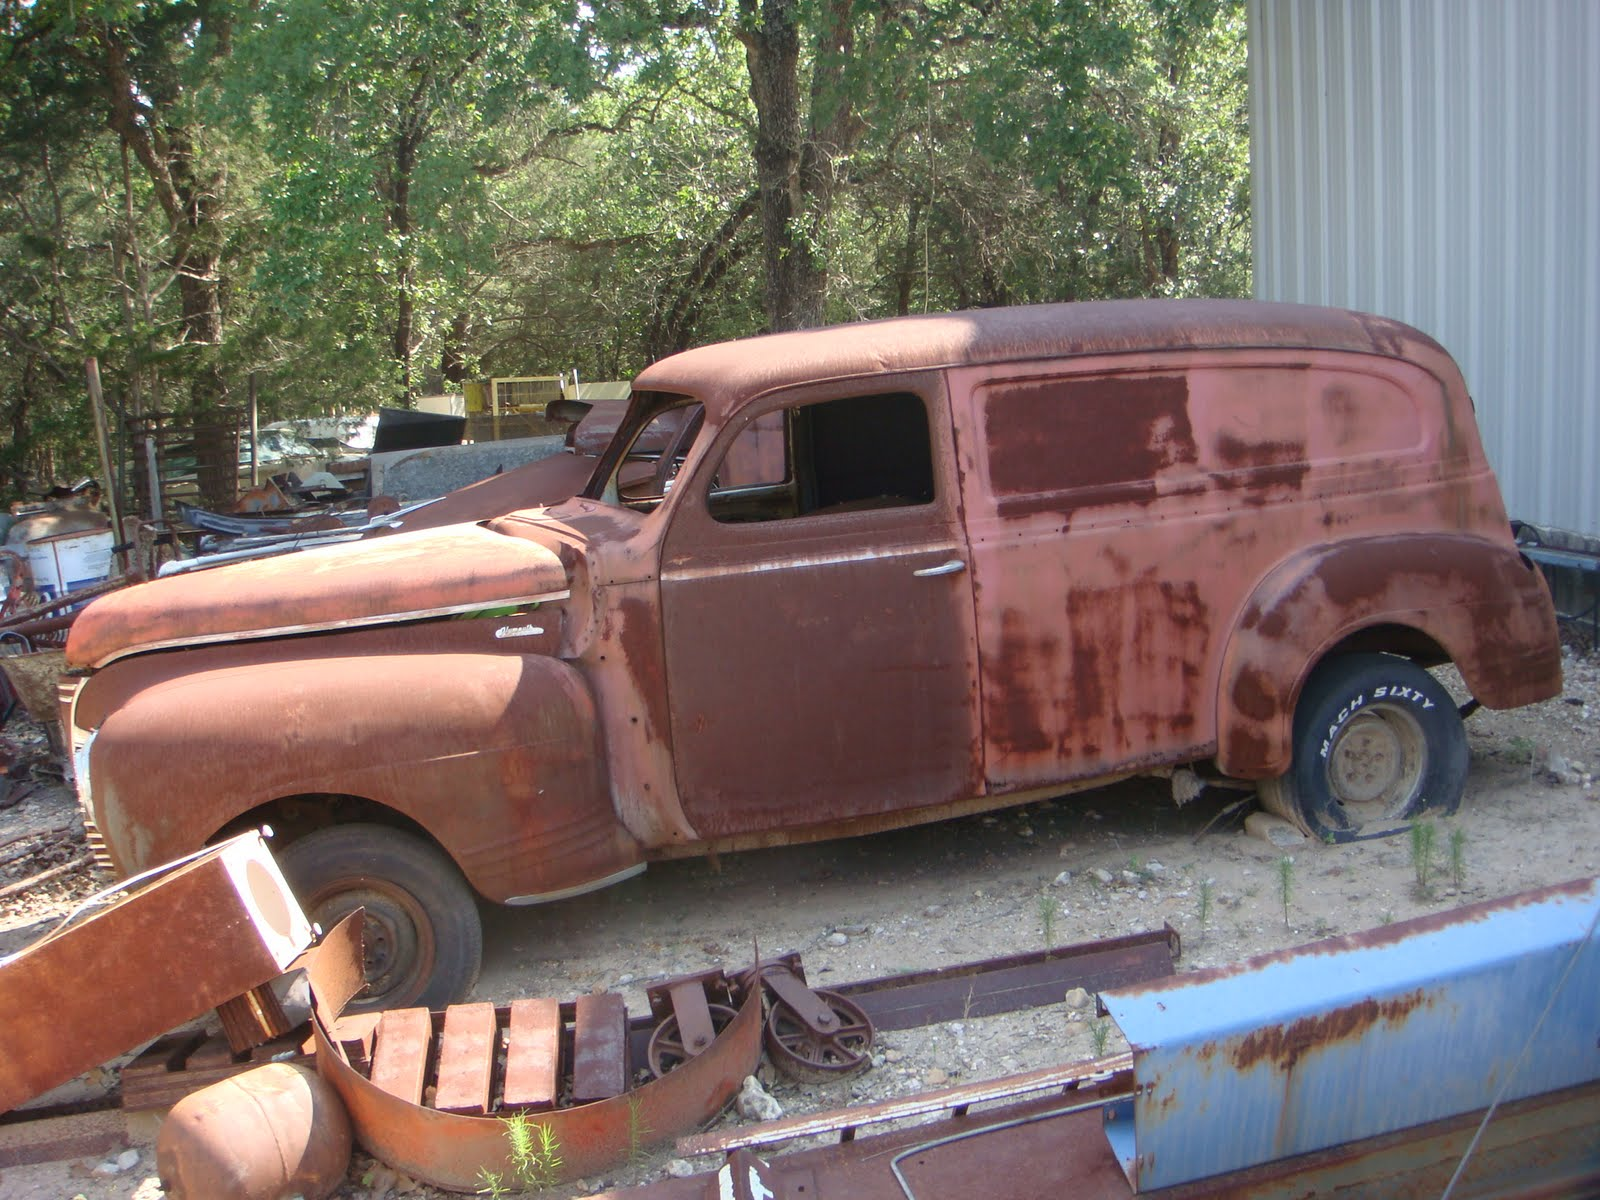 Southurn Surgeyour Vintage Iron Concierge 41 Plymouth Sedan 1941 Cars For Sale Delivery